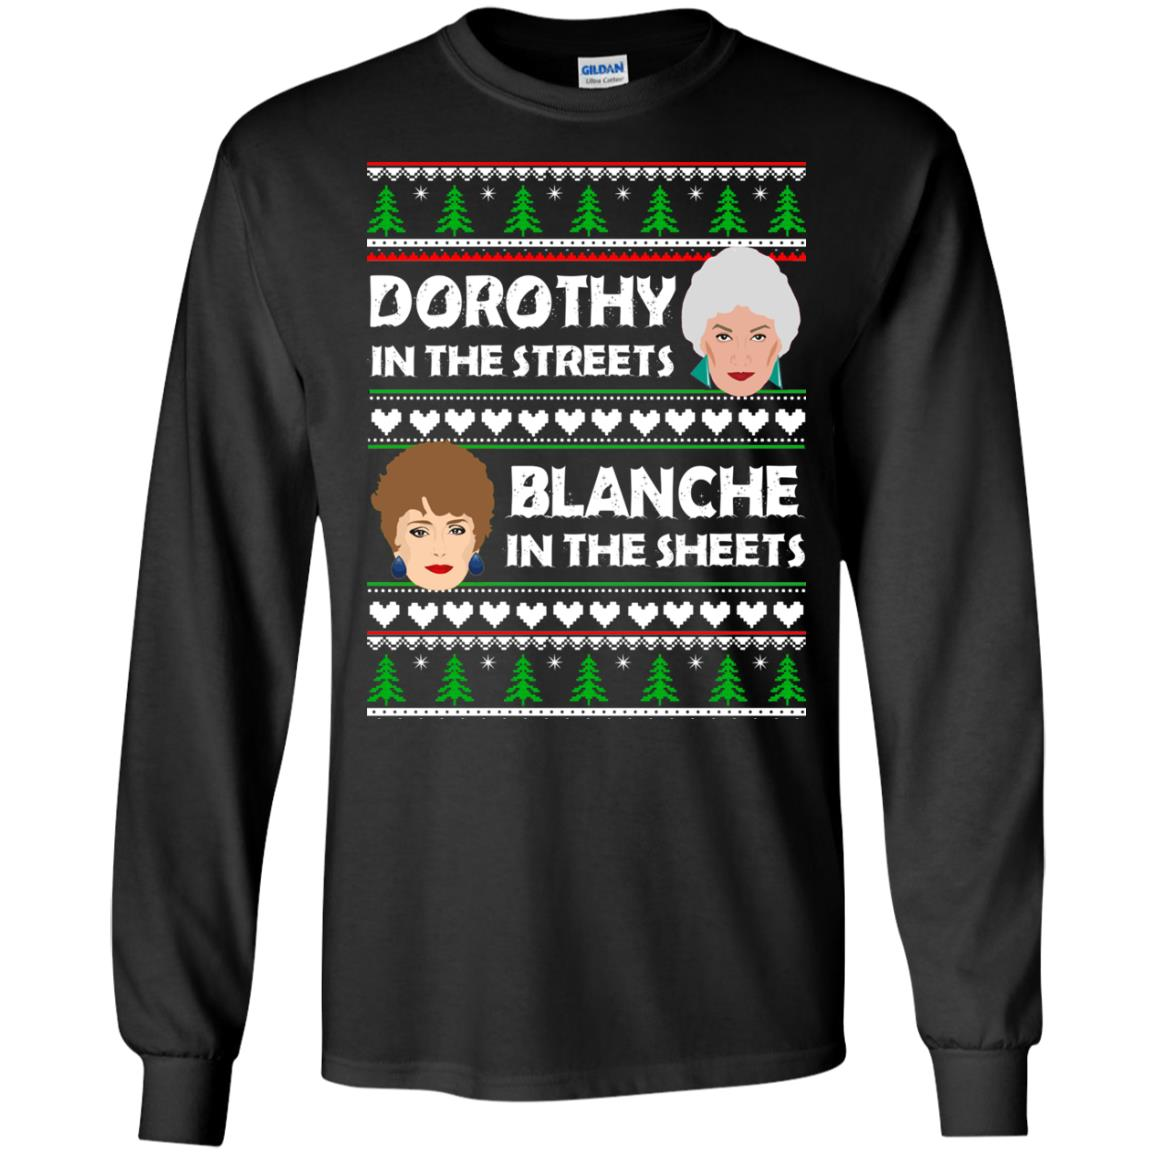 image 749 - Dorothy in the Streets Blanche in the Sheets Christmas Sweater